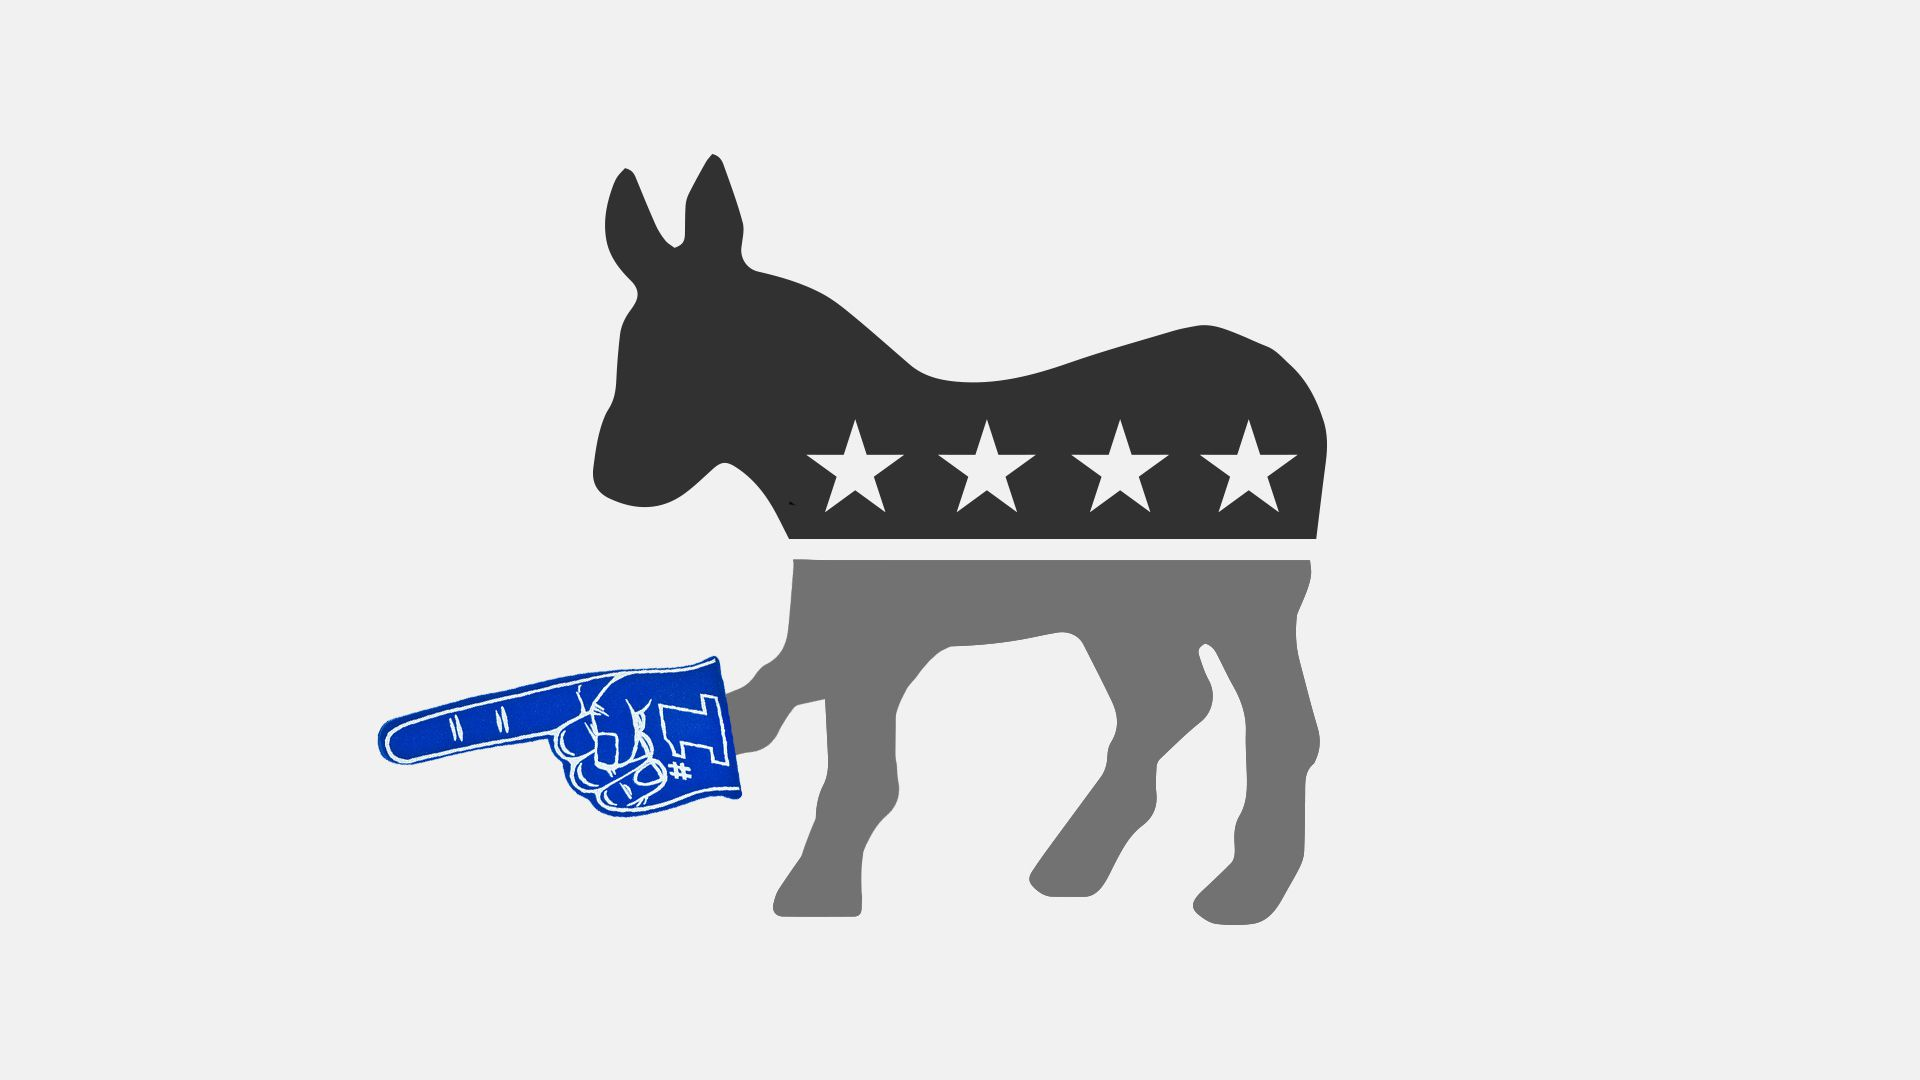 Illustration of  a democratic donkey with a #1 foam finger